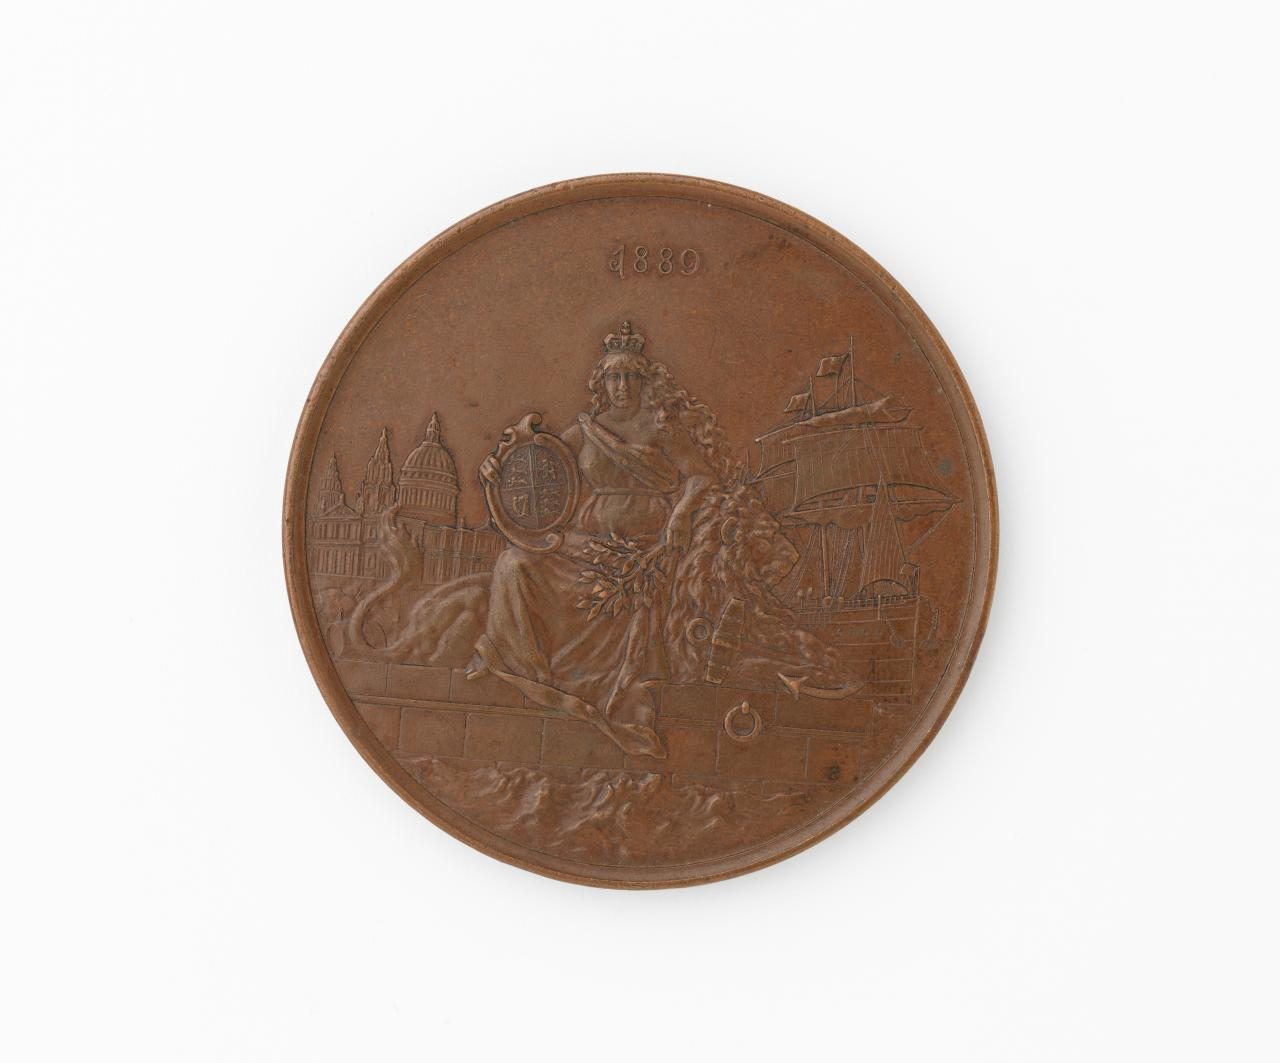 Naval review at Spithead 1889, commemorative medal